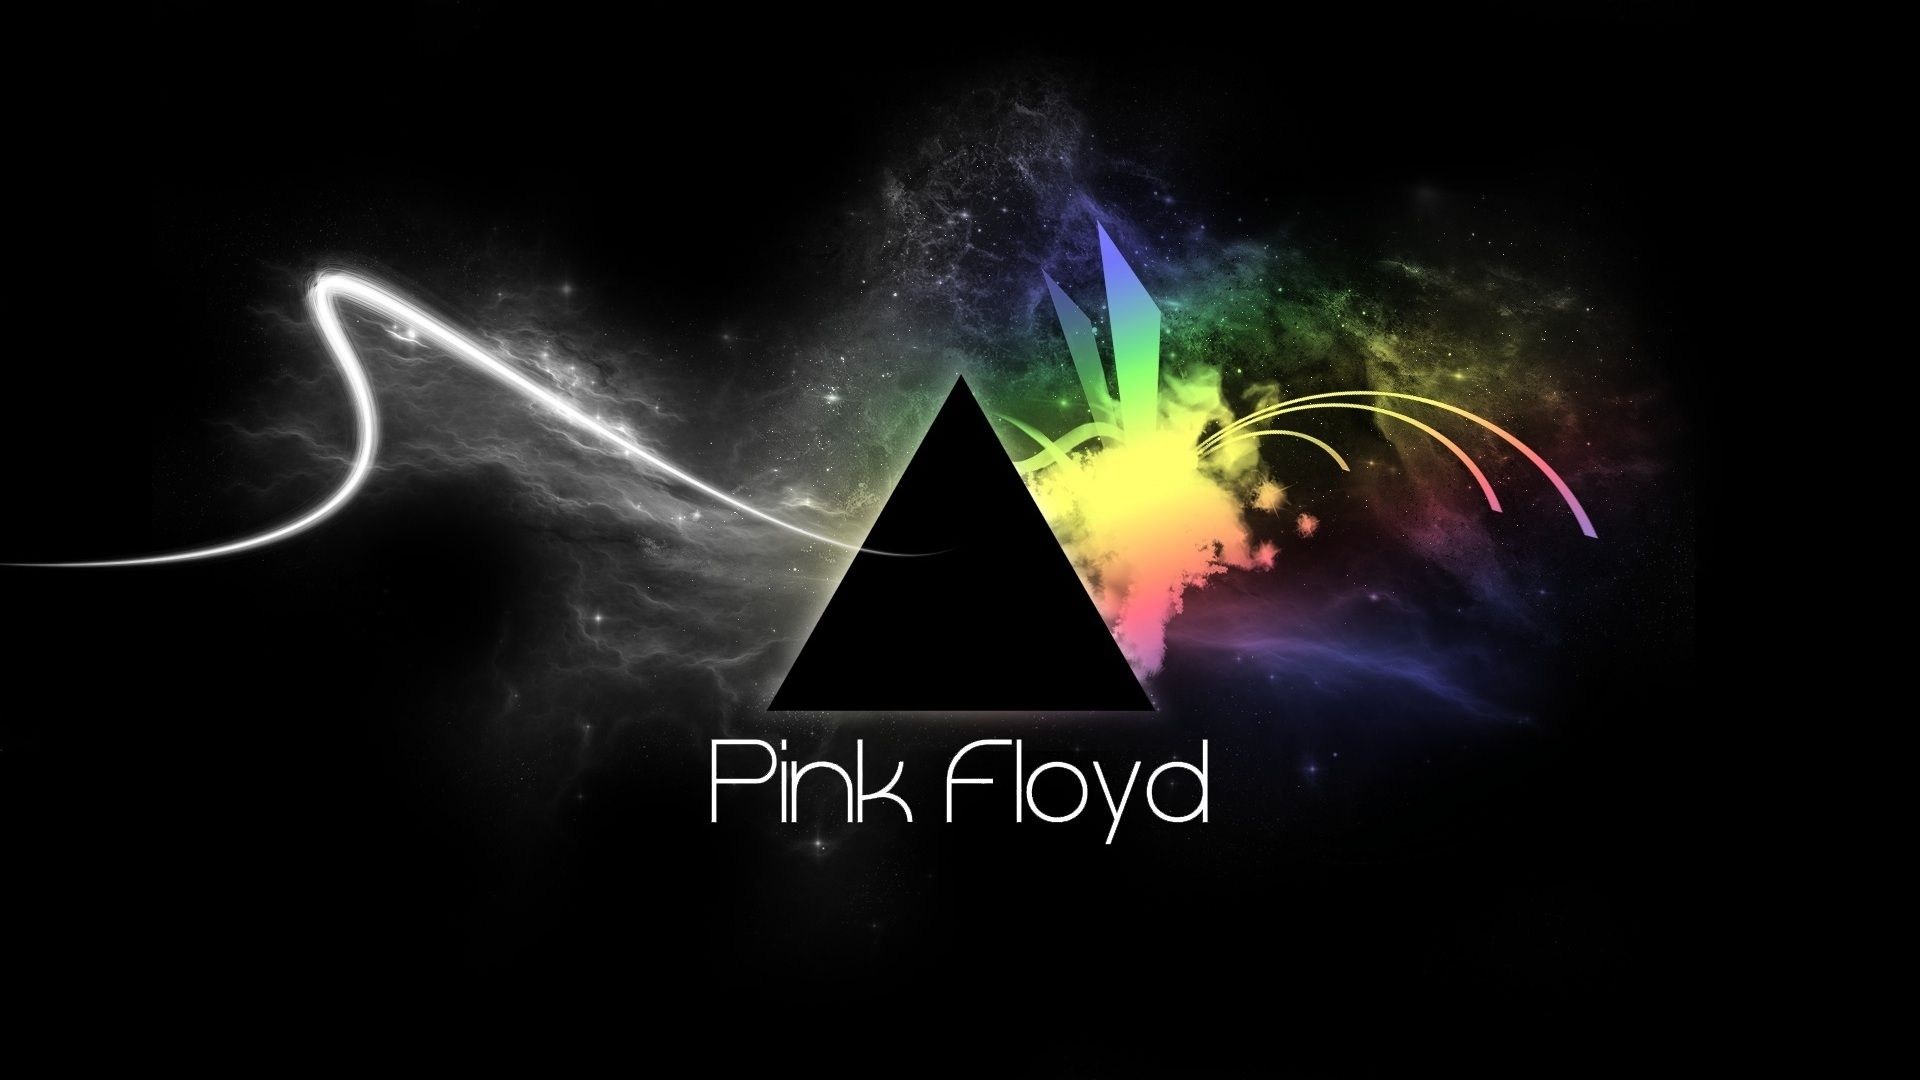 Pink Floyd High Quality Hd Wallpaper With Images Pink Floyd